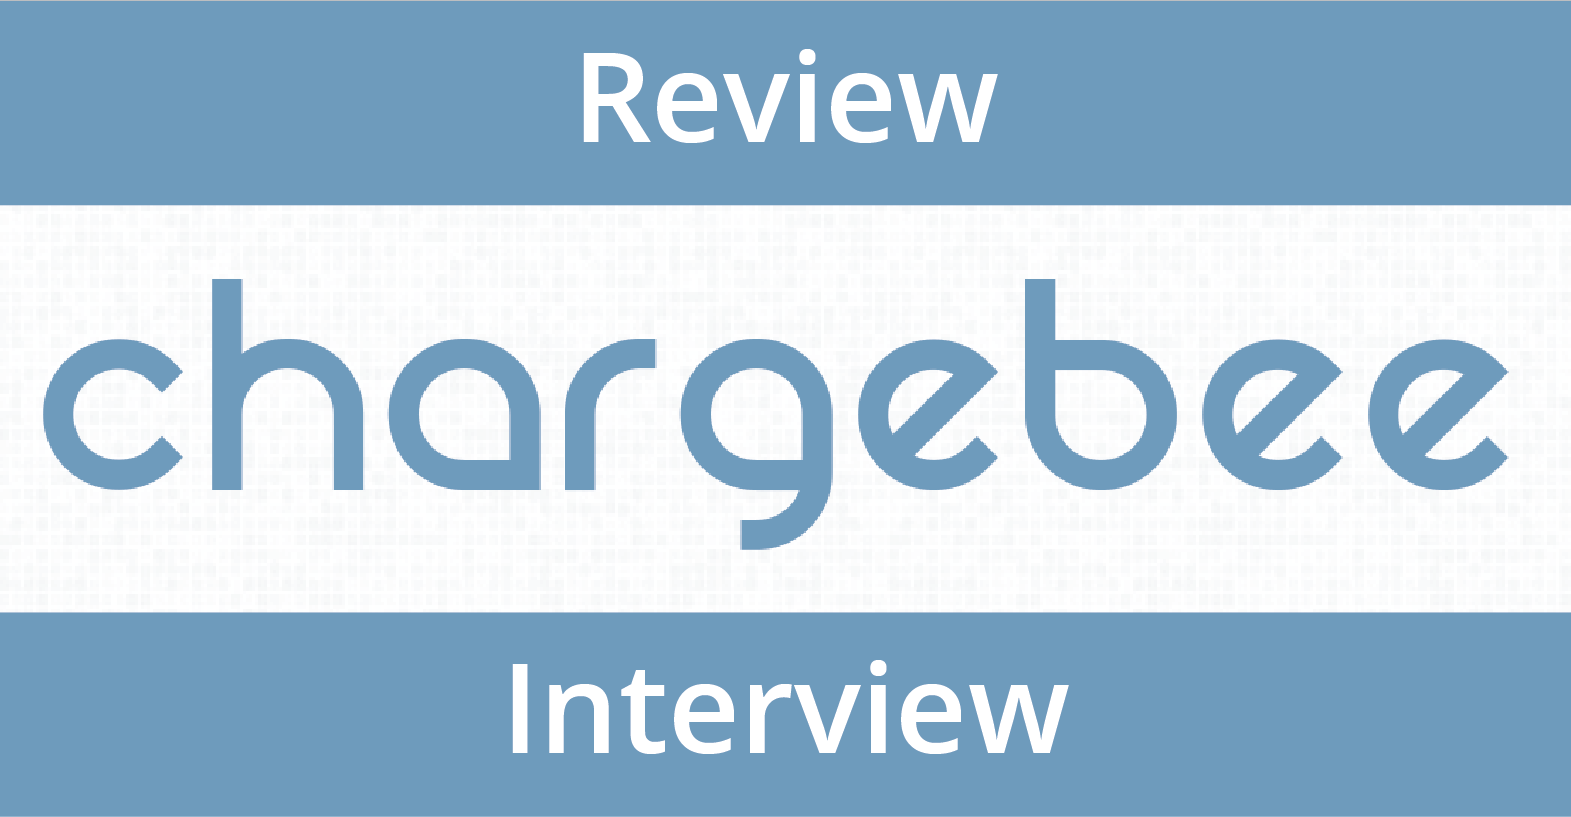 ChargeBee Review and Interview - Moblized